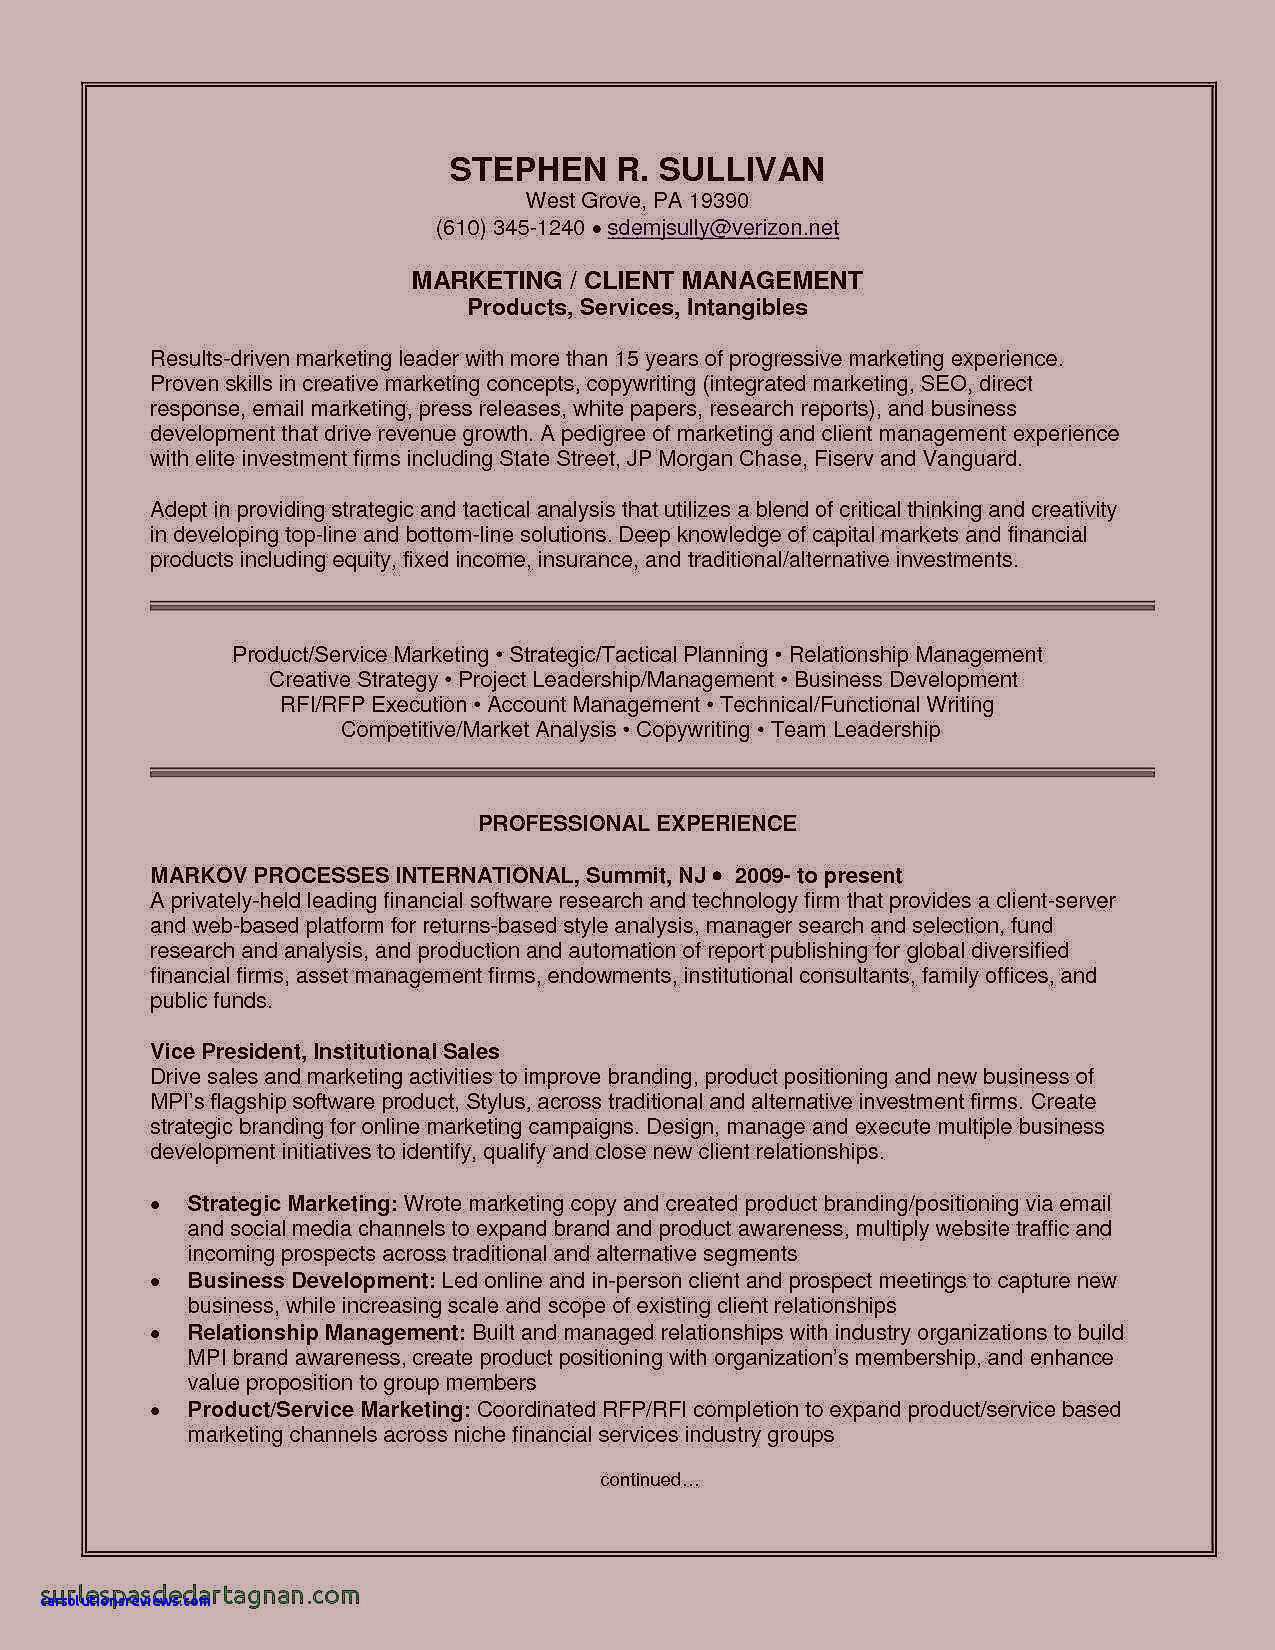 Salesman Duties and Responsibilities Resume - Awesome Car Salesman Job Description for Resume New Resume format